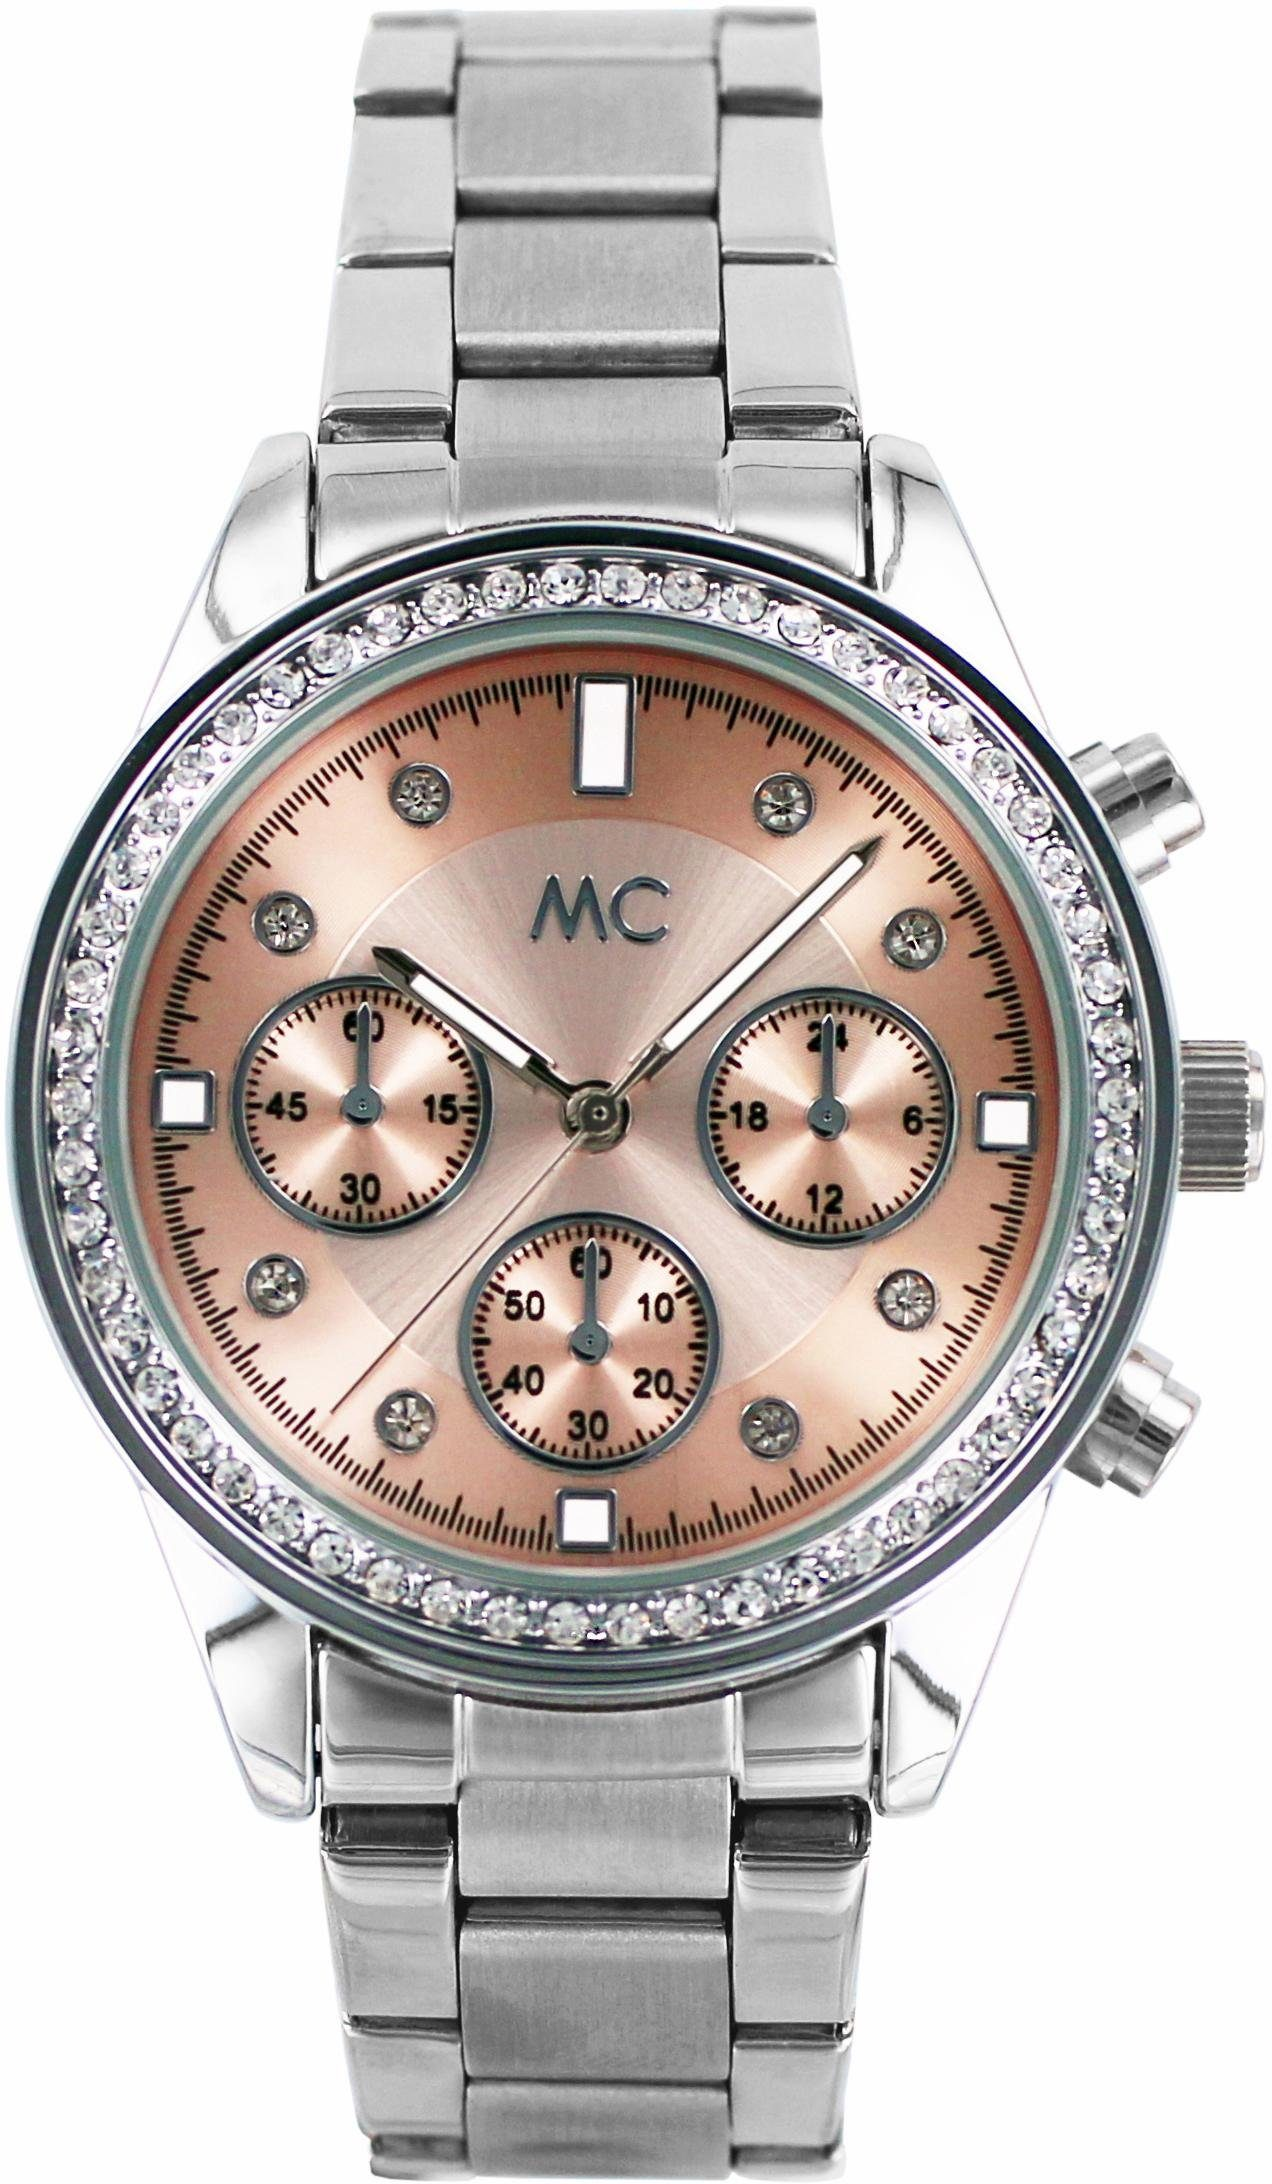 MC Quarzuhr »51880« in Chrono-Optik